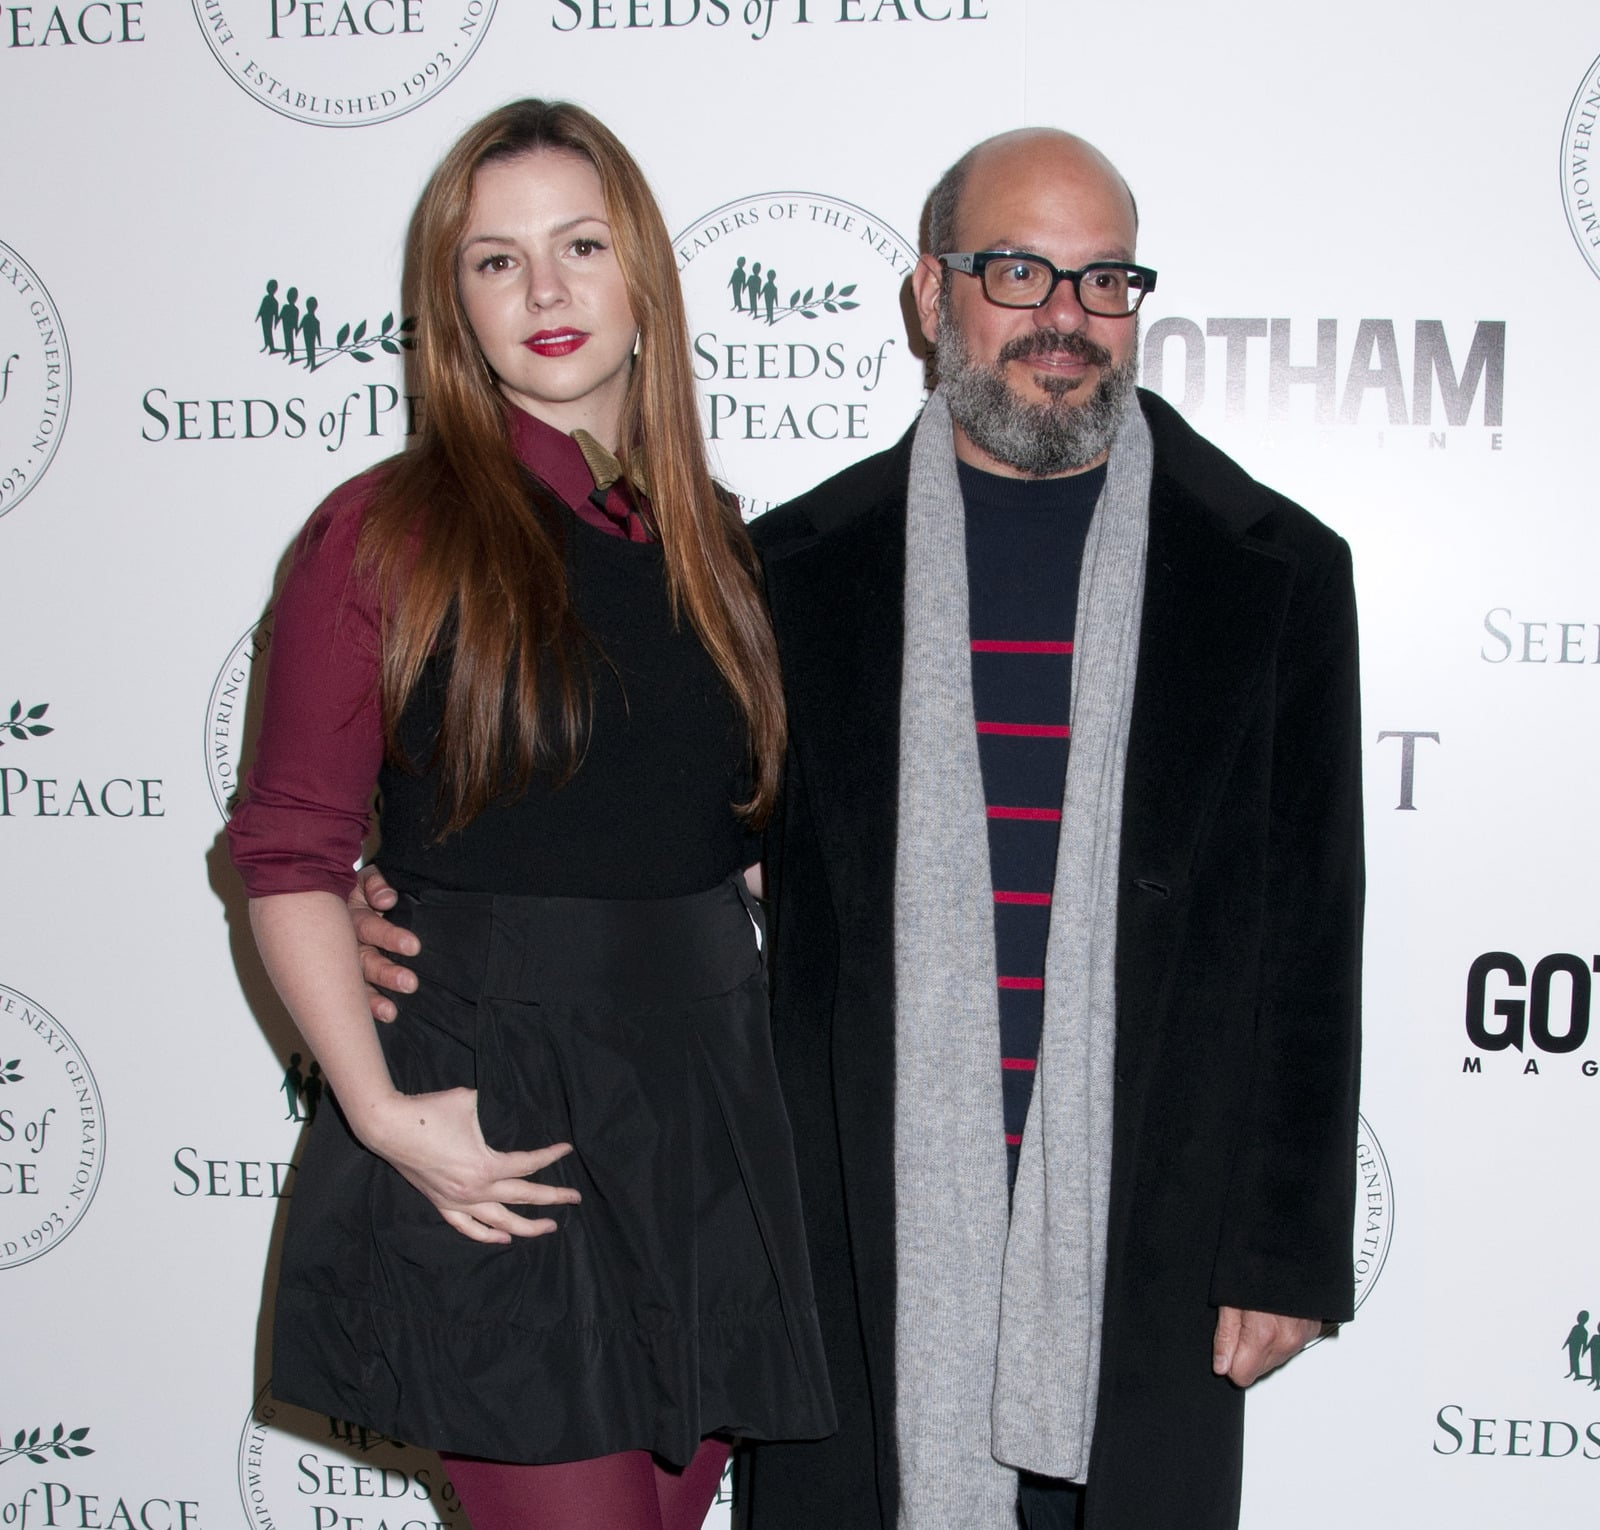 Amber Tamblyn Wedding.Amber Tamblyn And David Cross Married The Hollywood Gossip